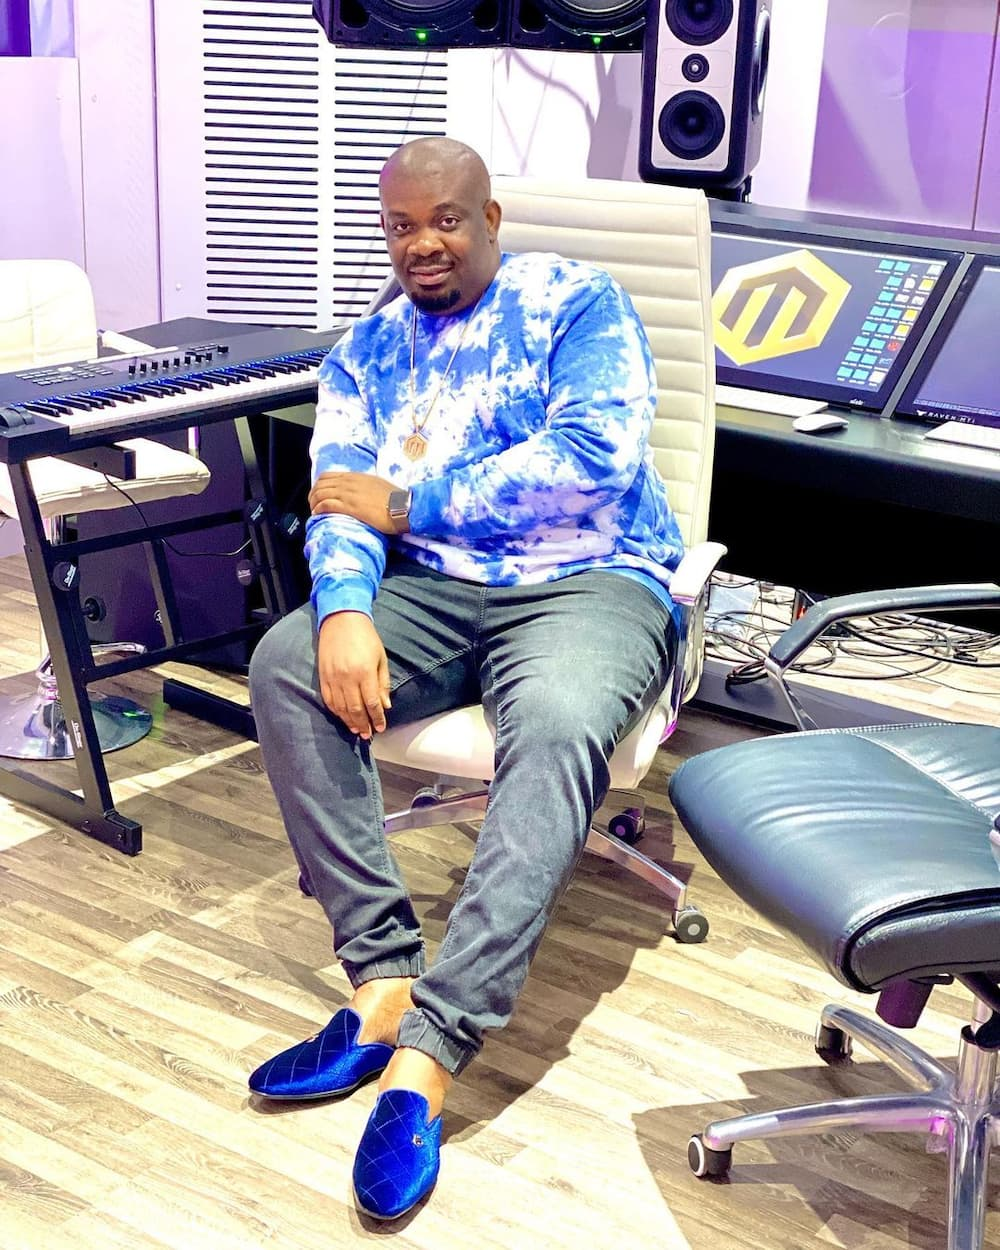 Don Jazzy reacts to report that Rihanna is happy in relationship with Asap Rocky